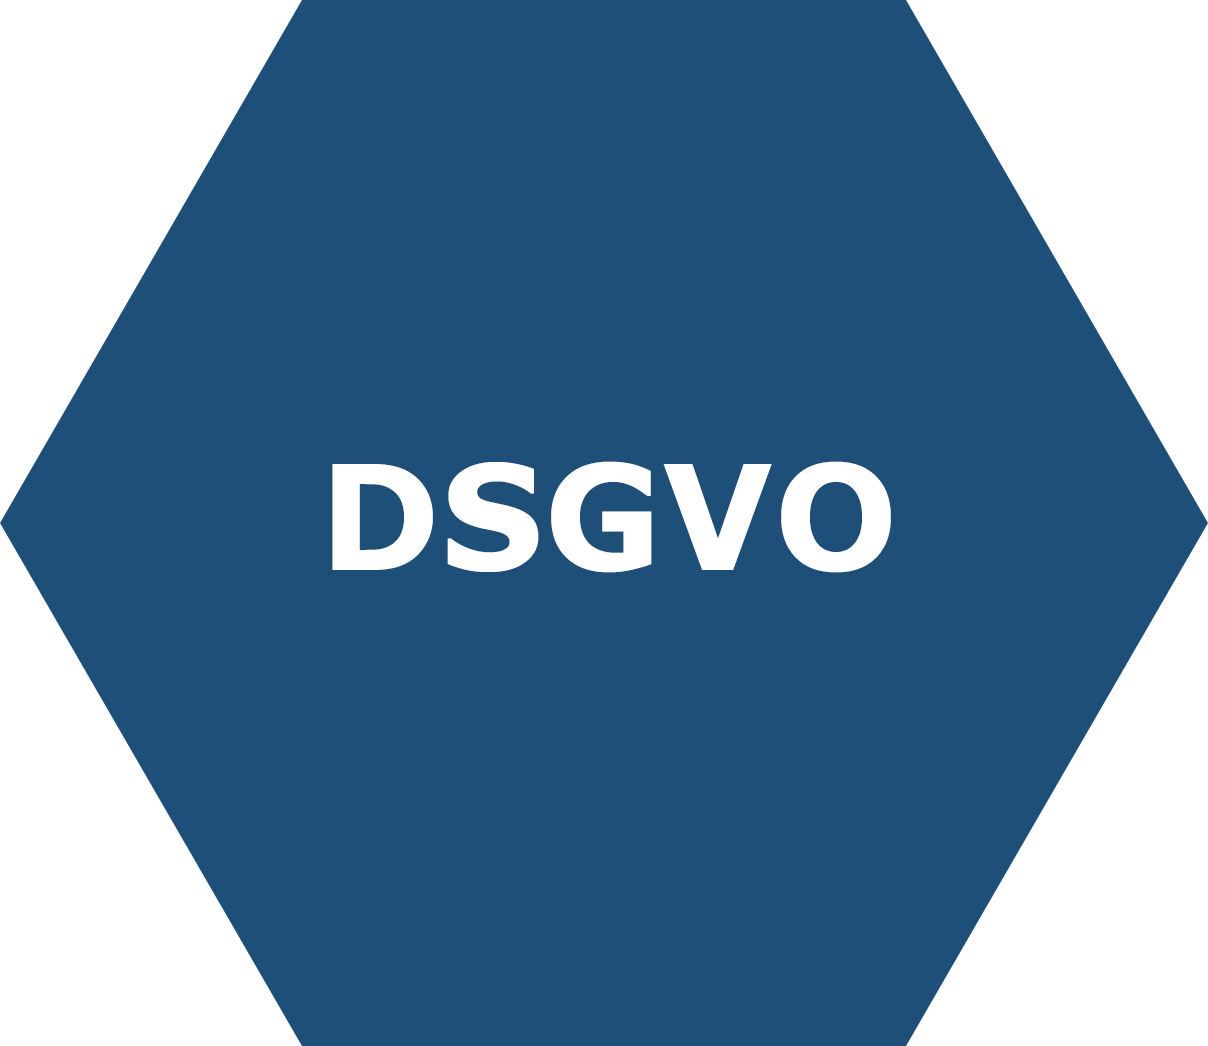 dsgvo.png